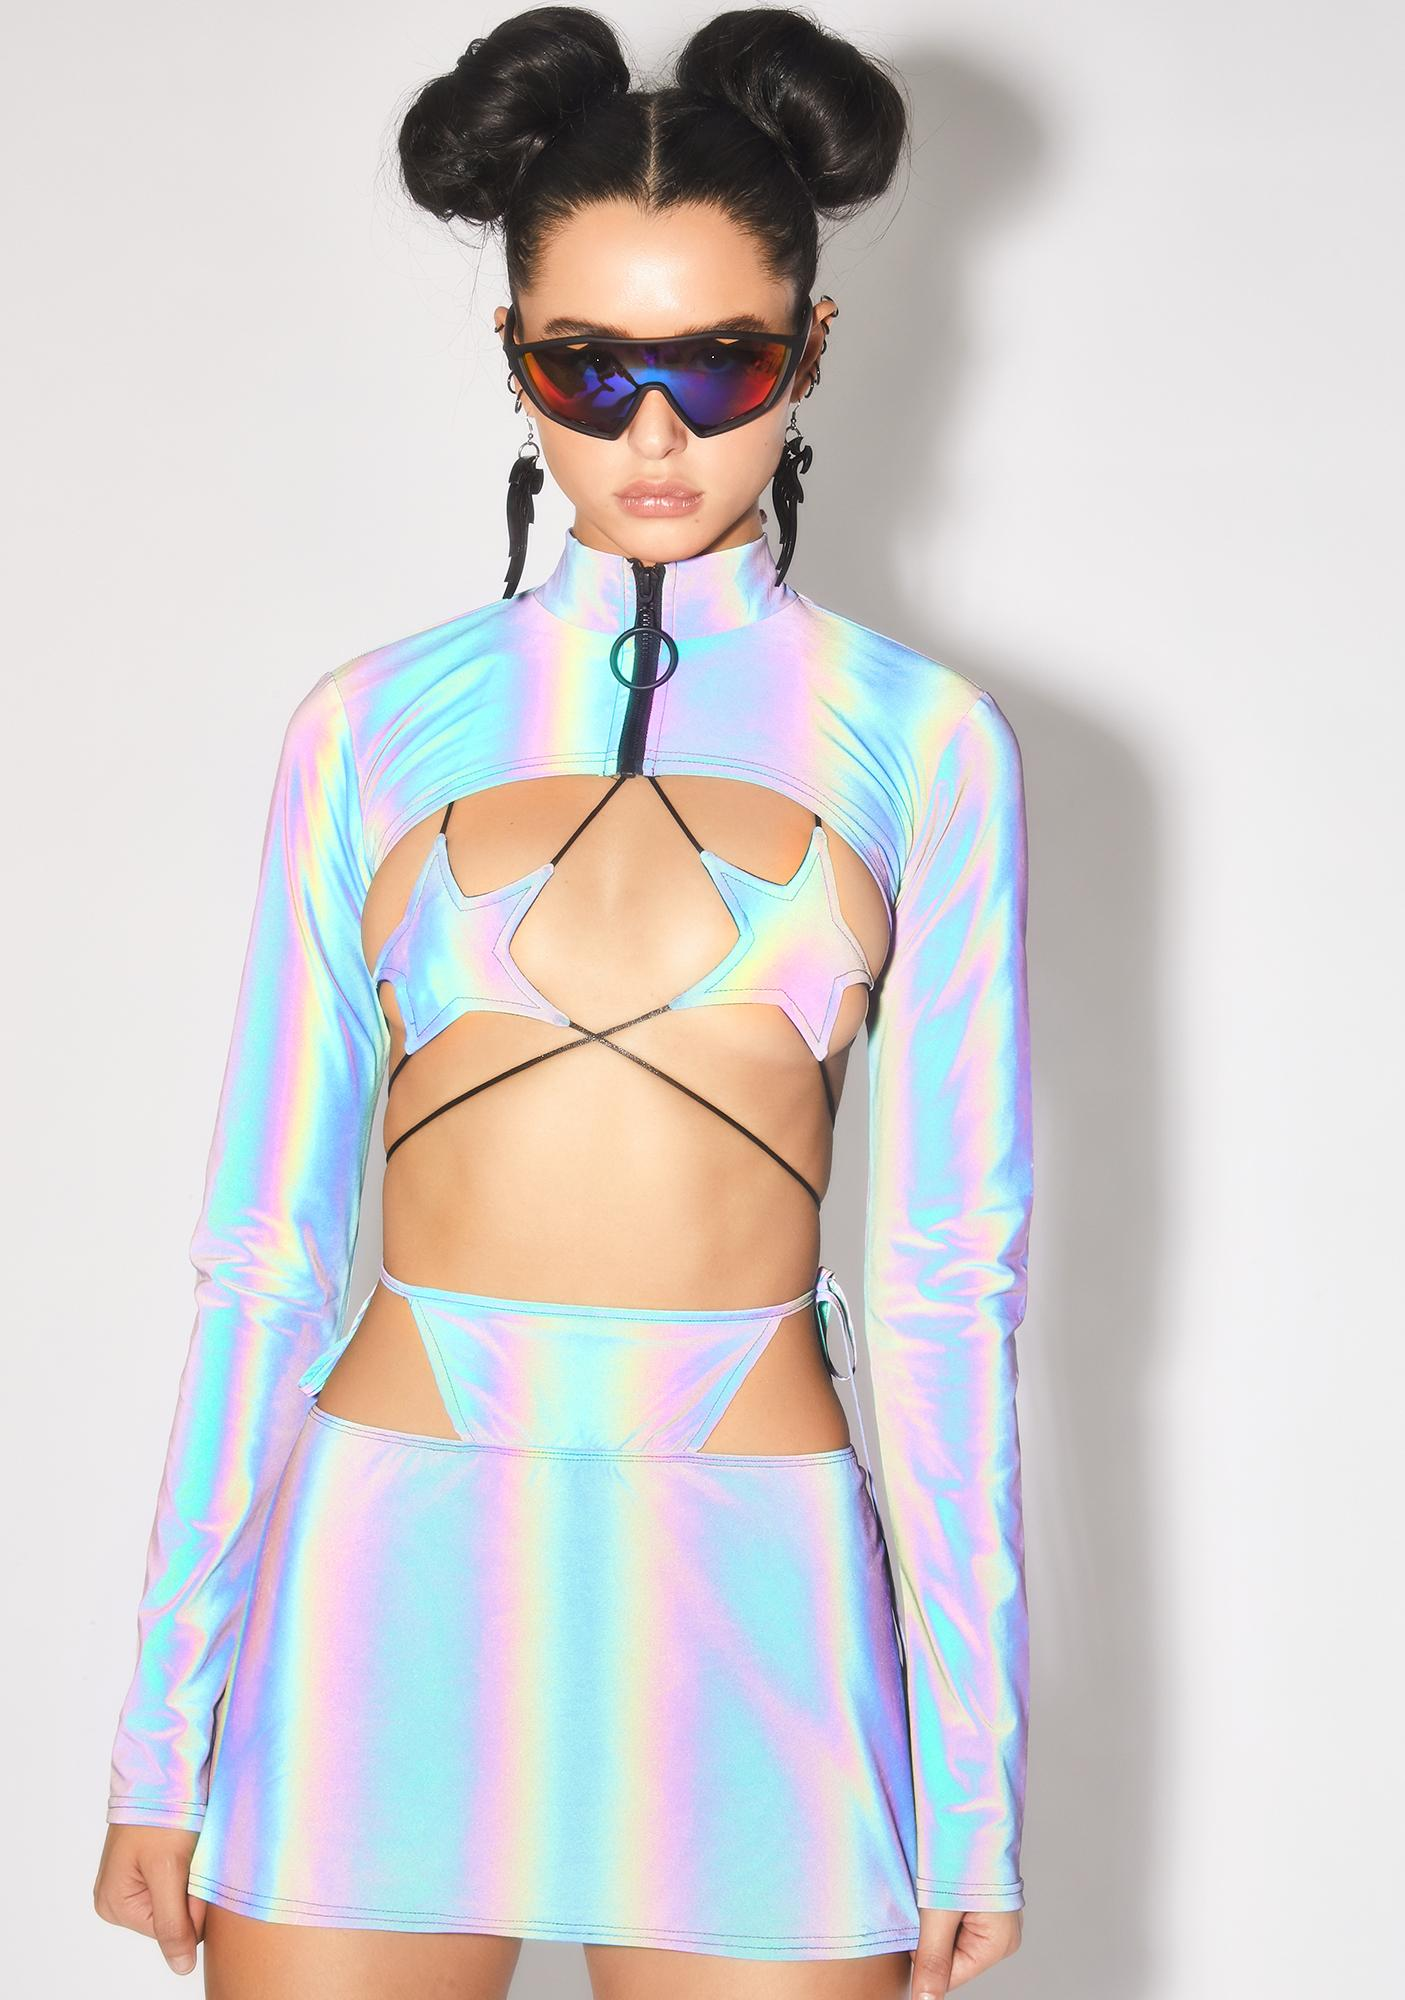 Club Exx Spectral Frequency Reflective Shrug